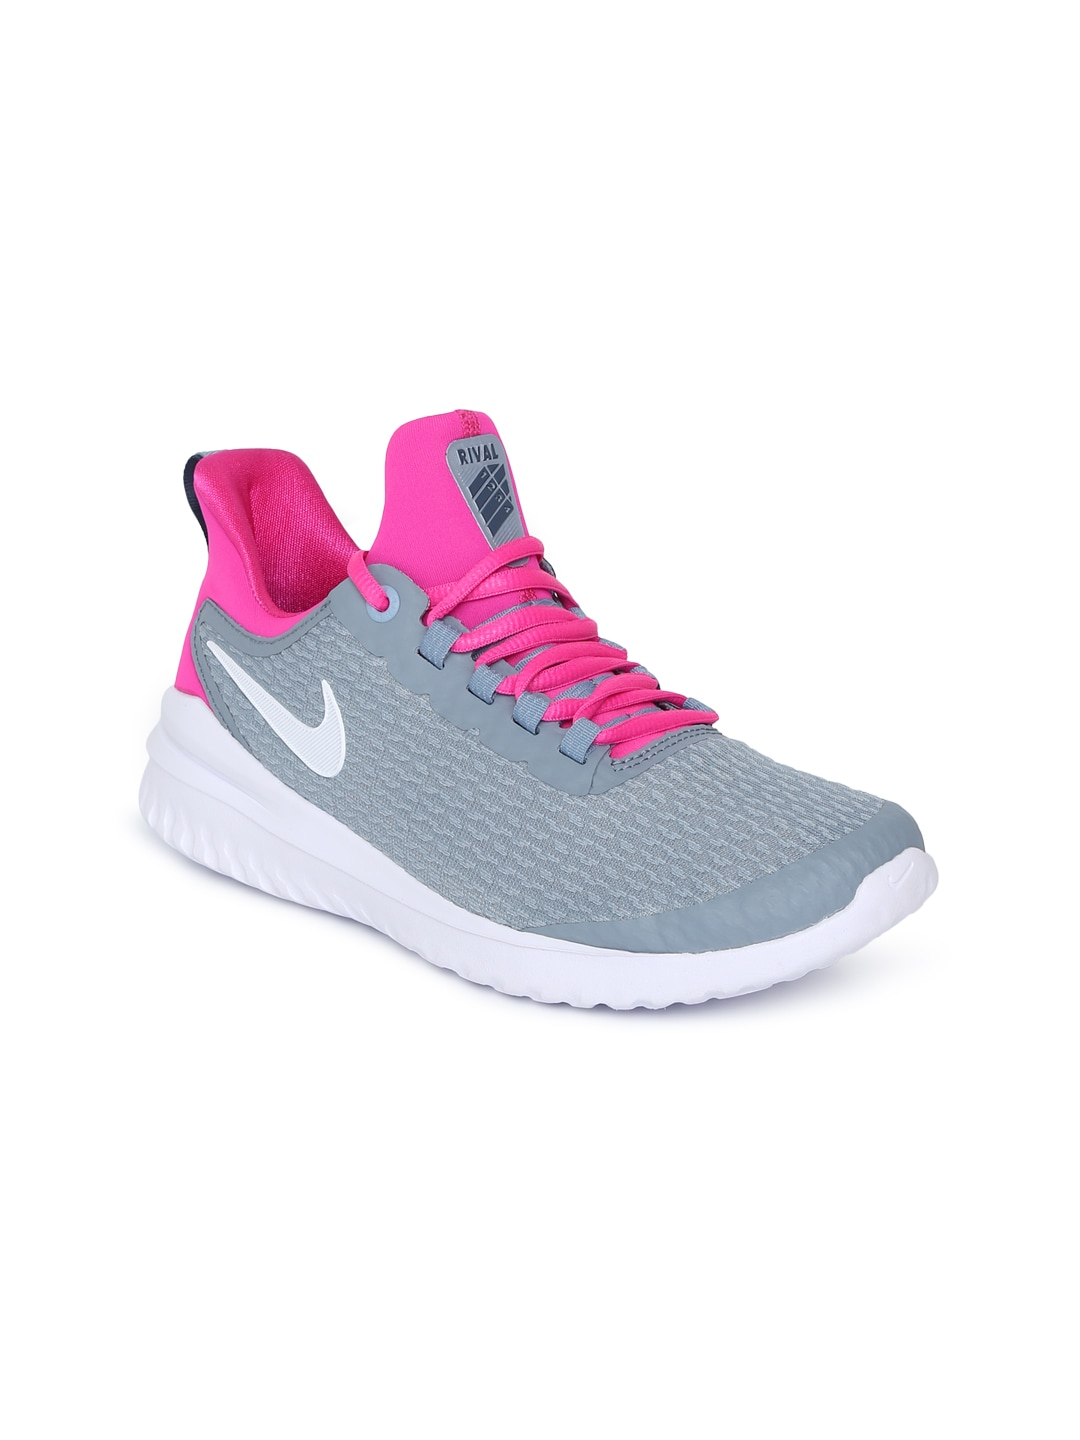 quality design df180 ae793 Women s Nike Sports Shoes - Buy Nike Sports Shoes for Women Online in India